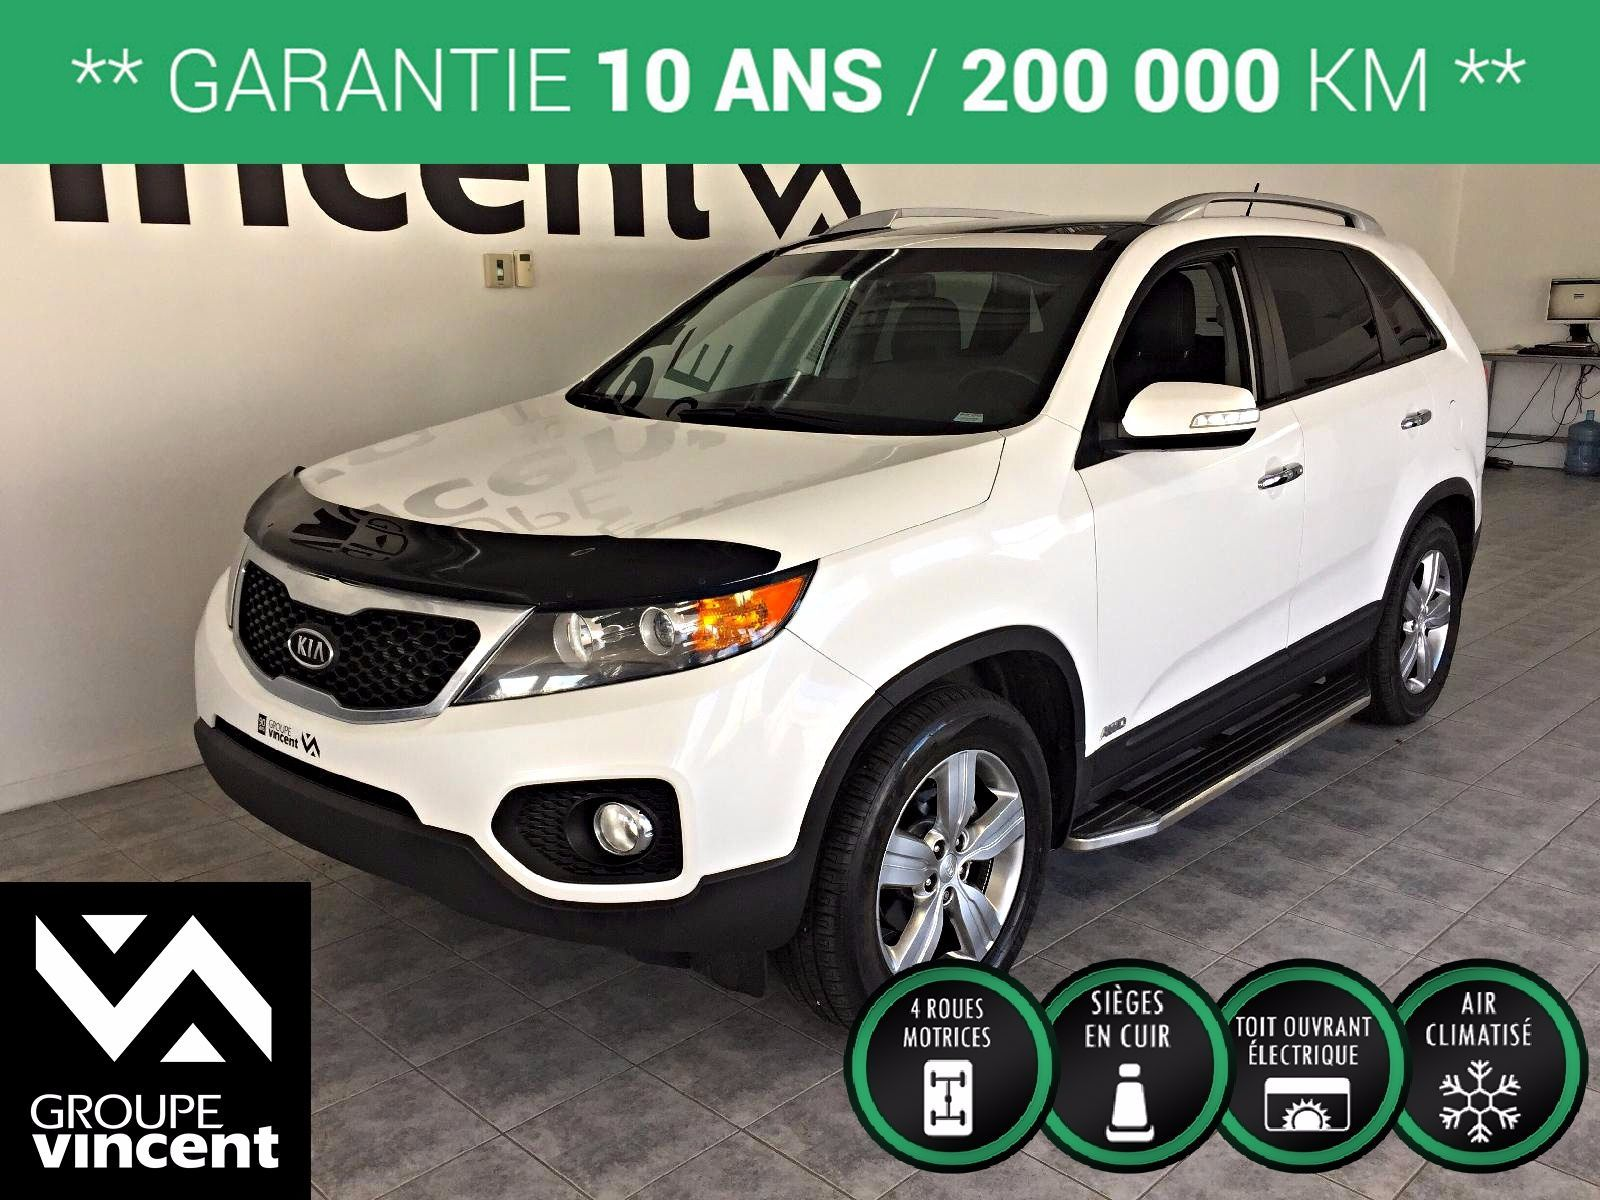 kia sorento ex cam ra de recul 2013 d 39 occasion trois rivi res hyundai trois rivi res a2009s v. Black Bedroom Furniture Sets. Home Design Ideas